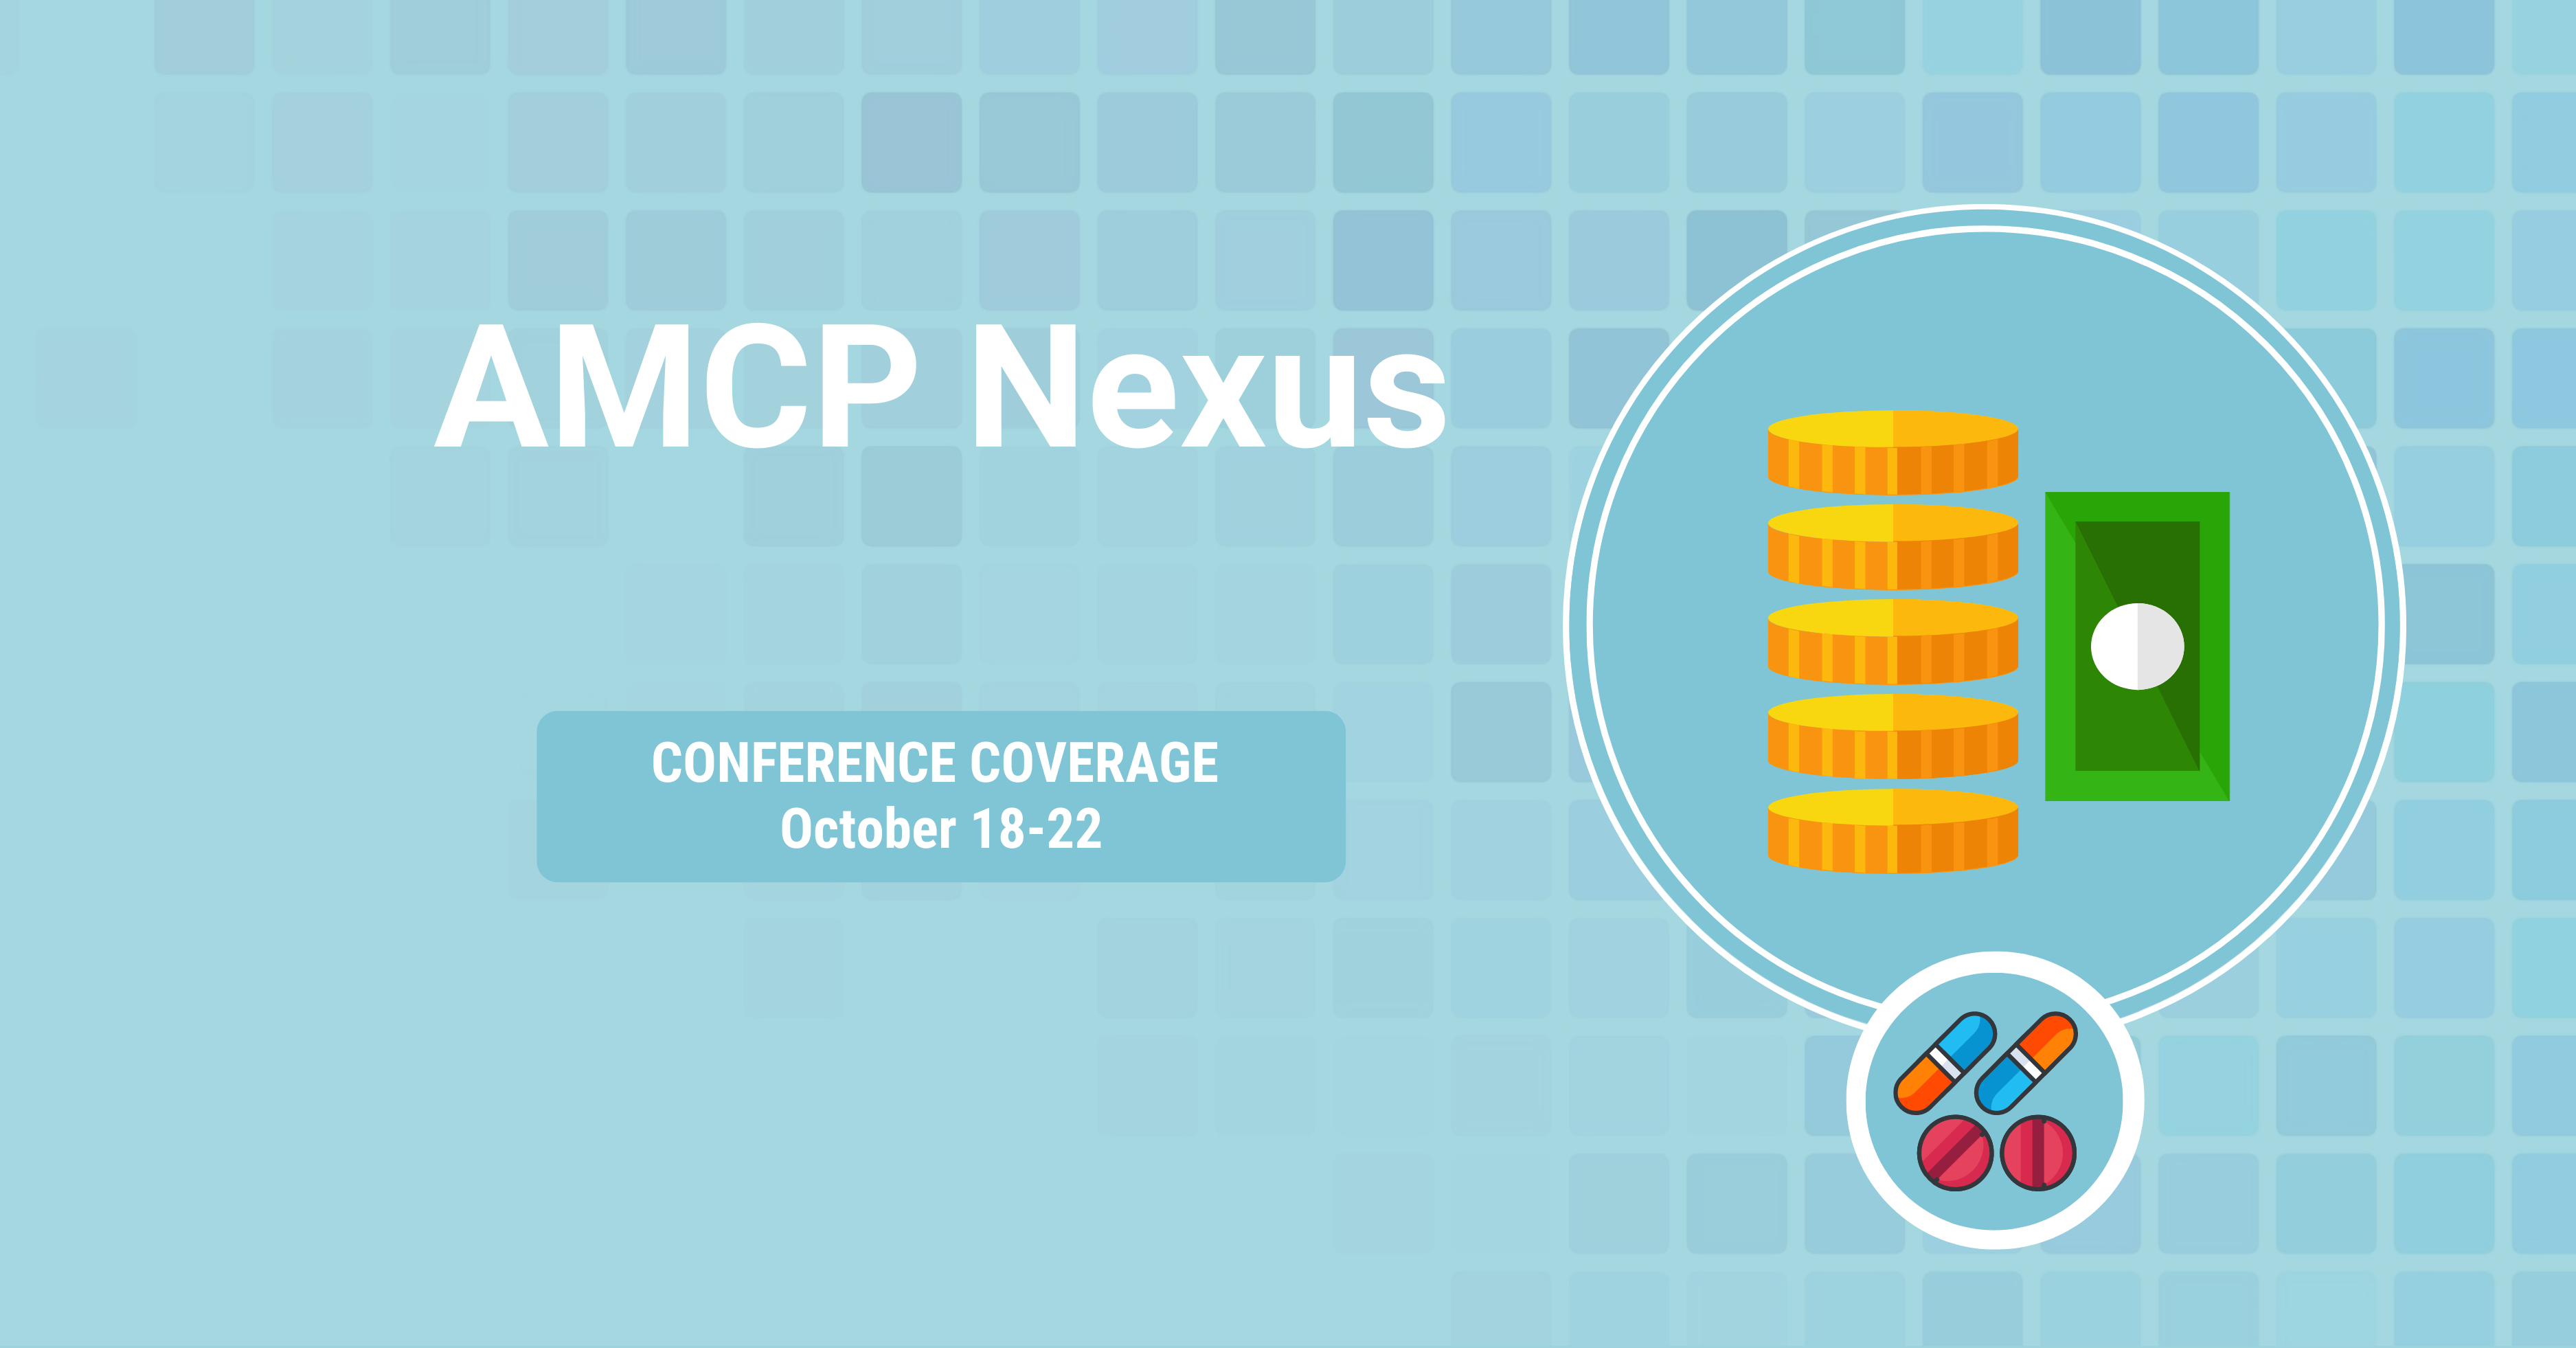 AMCP Nexus Sessions Will Focus on Drug Costs and Addressing Health Disparities